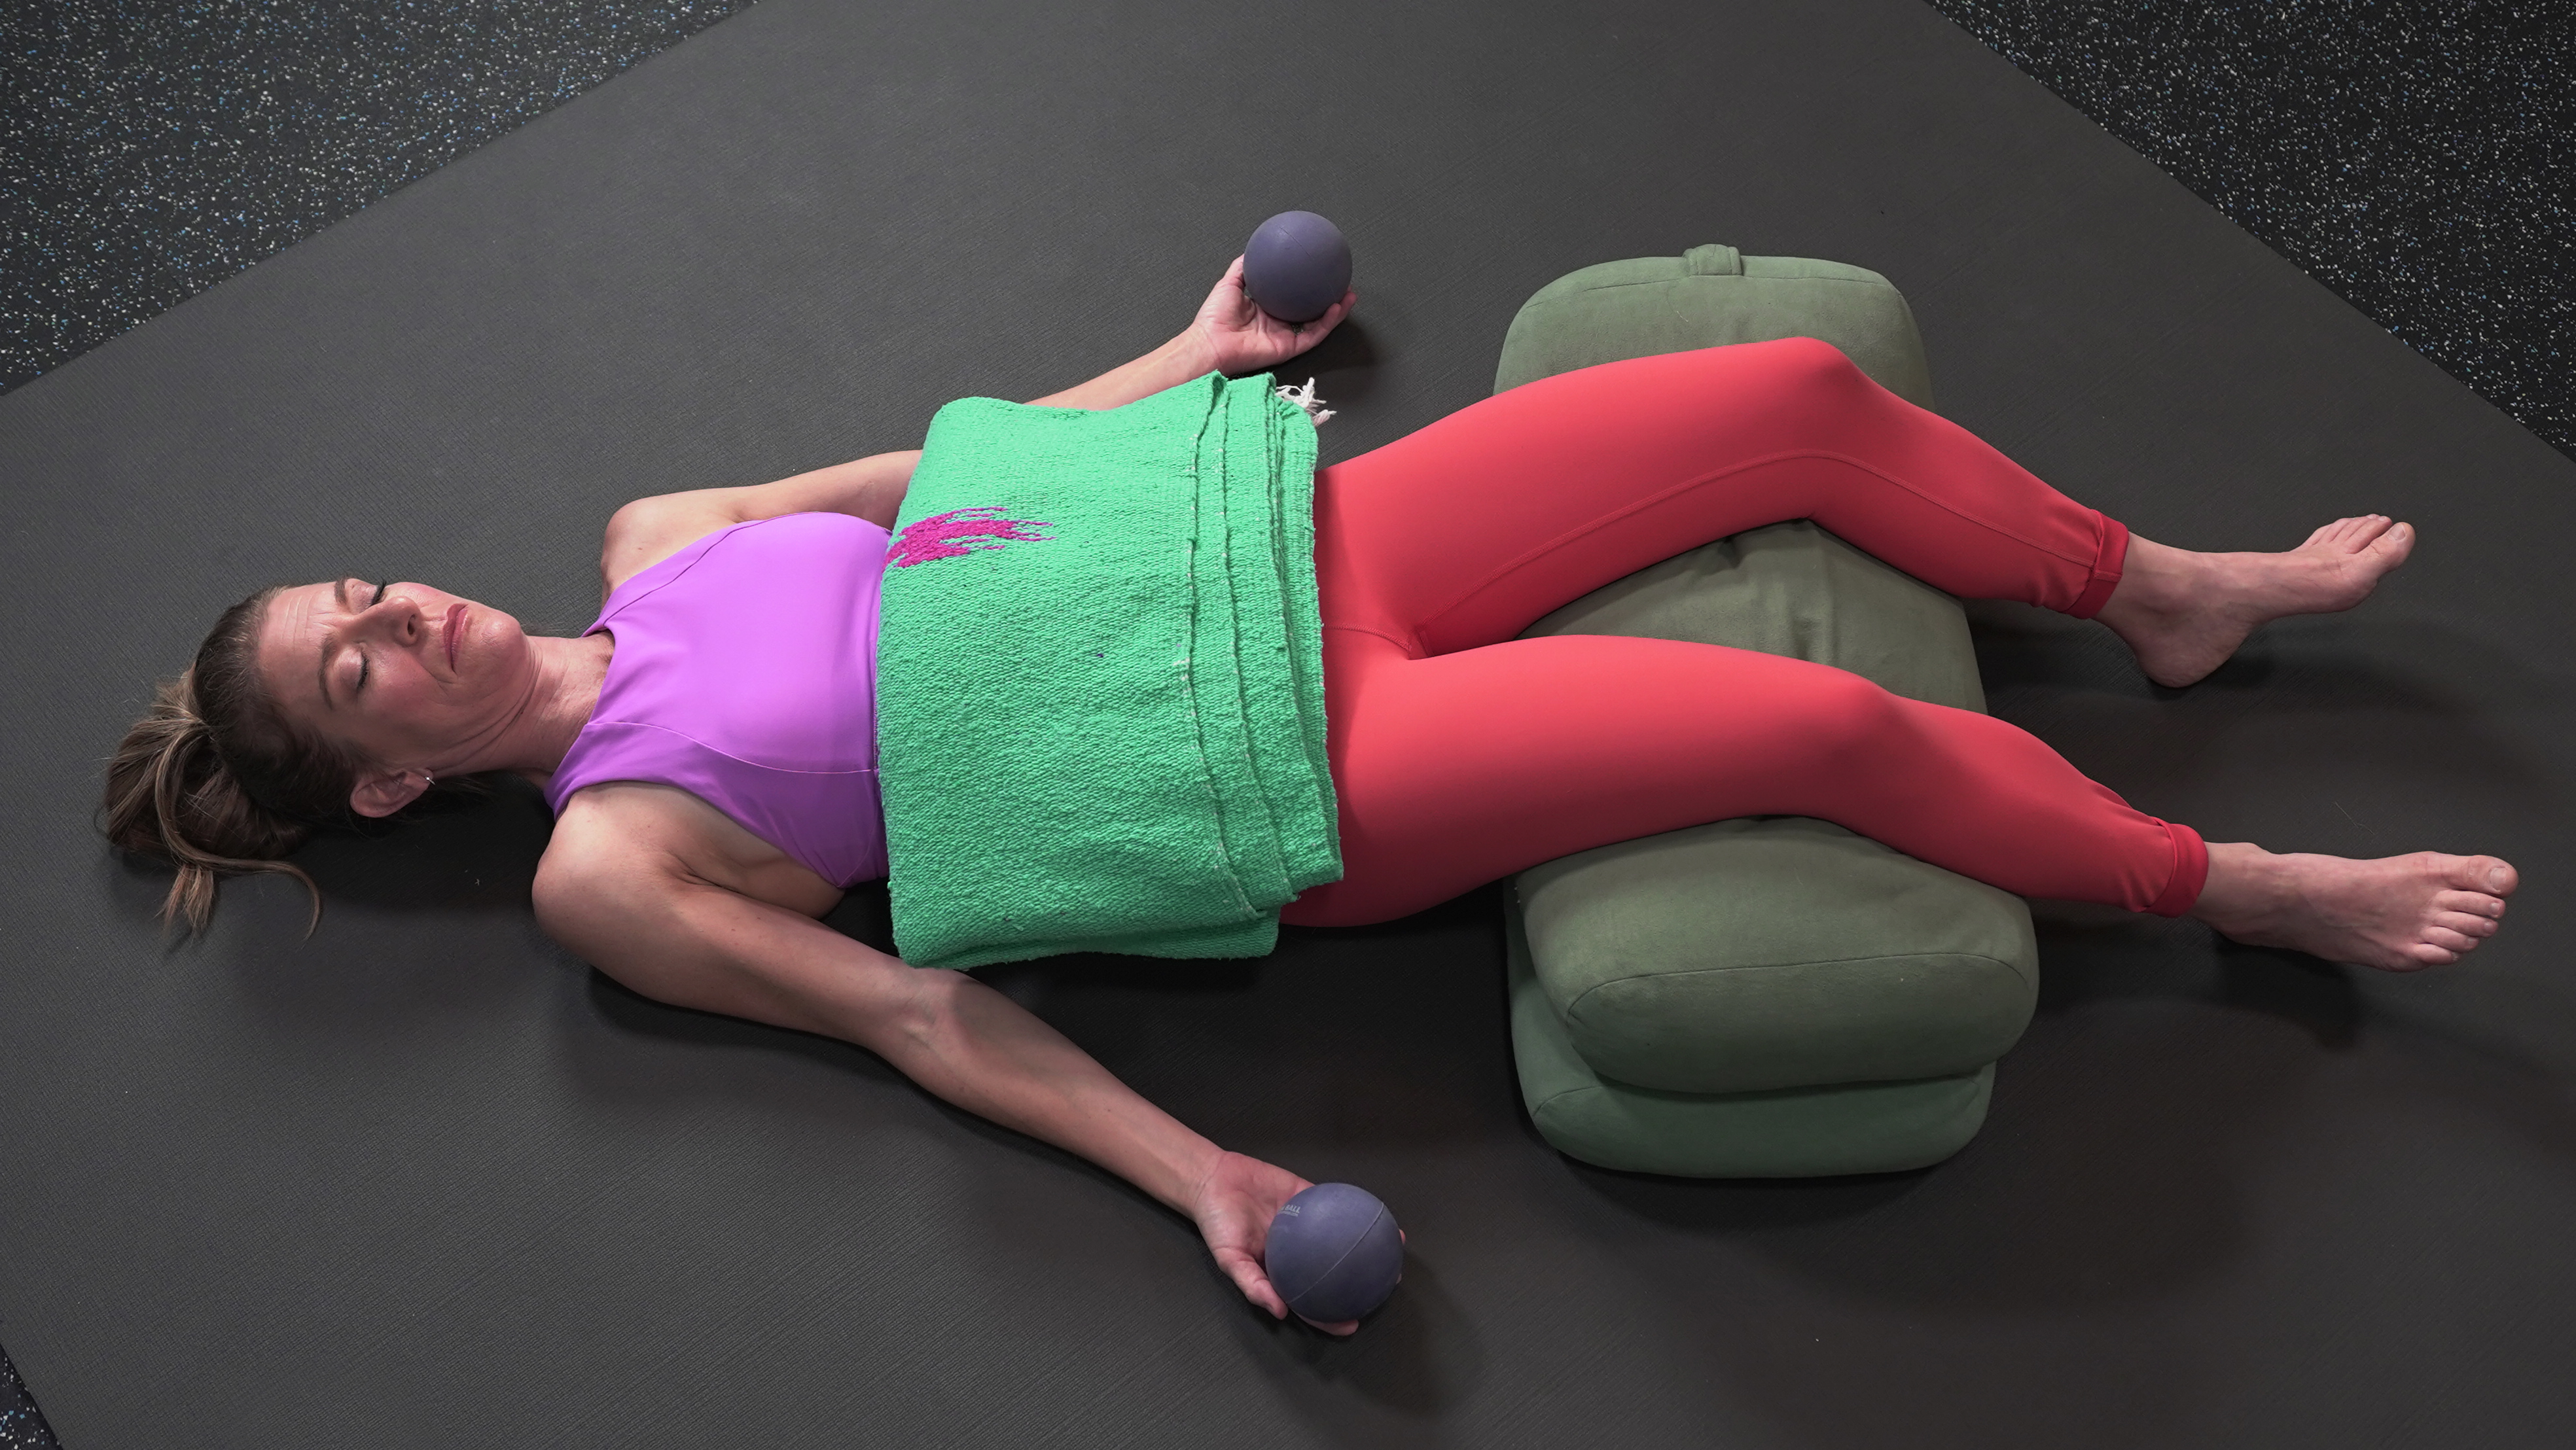 Woman lies in constructive rest position; two yoga bolsters propping up knees, a folded blanket on the abdomen and alpha self massage balls in hand to add weight and comfort